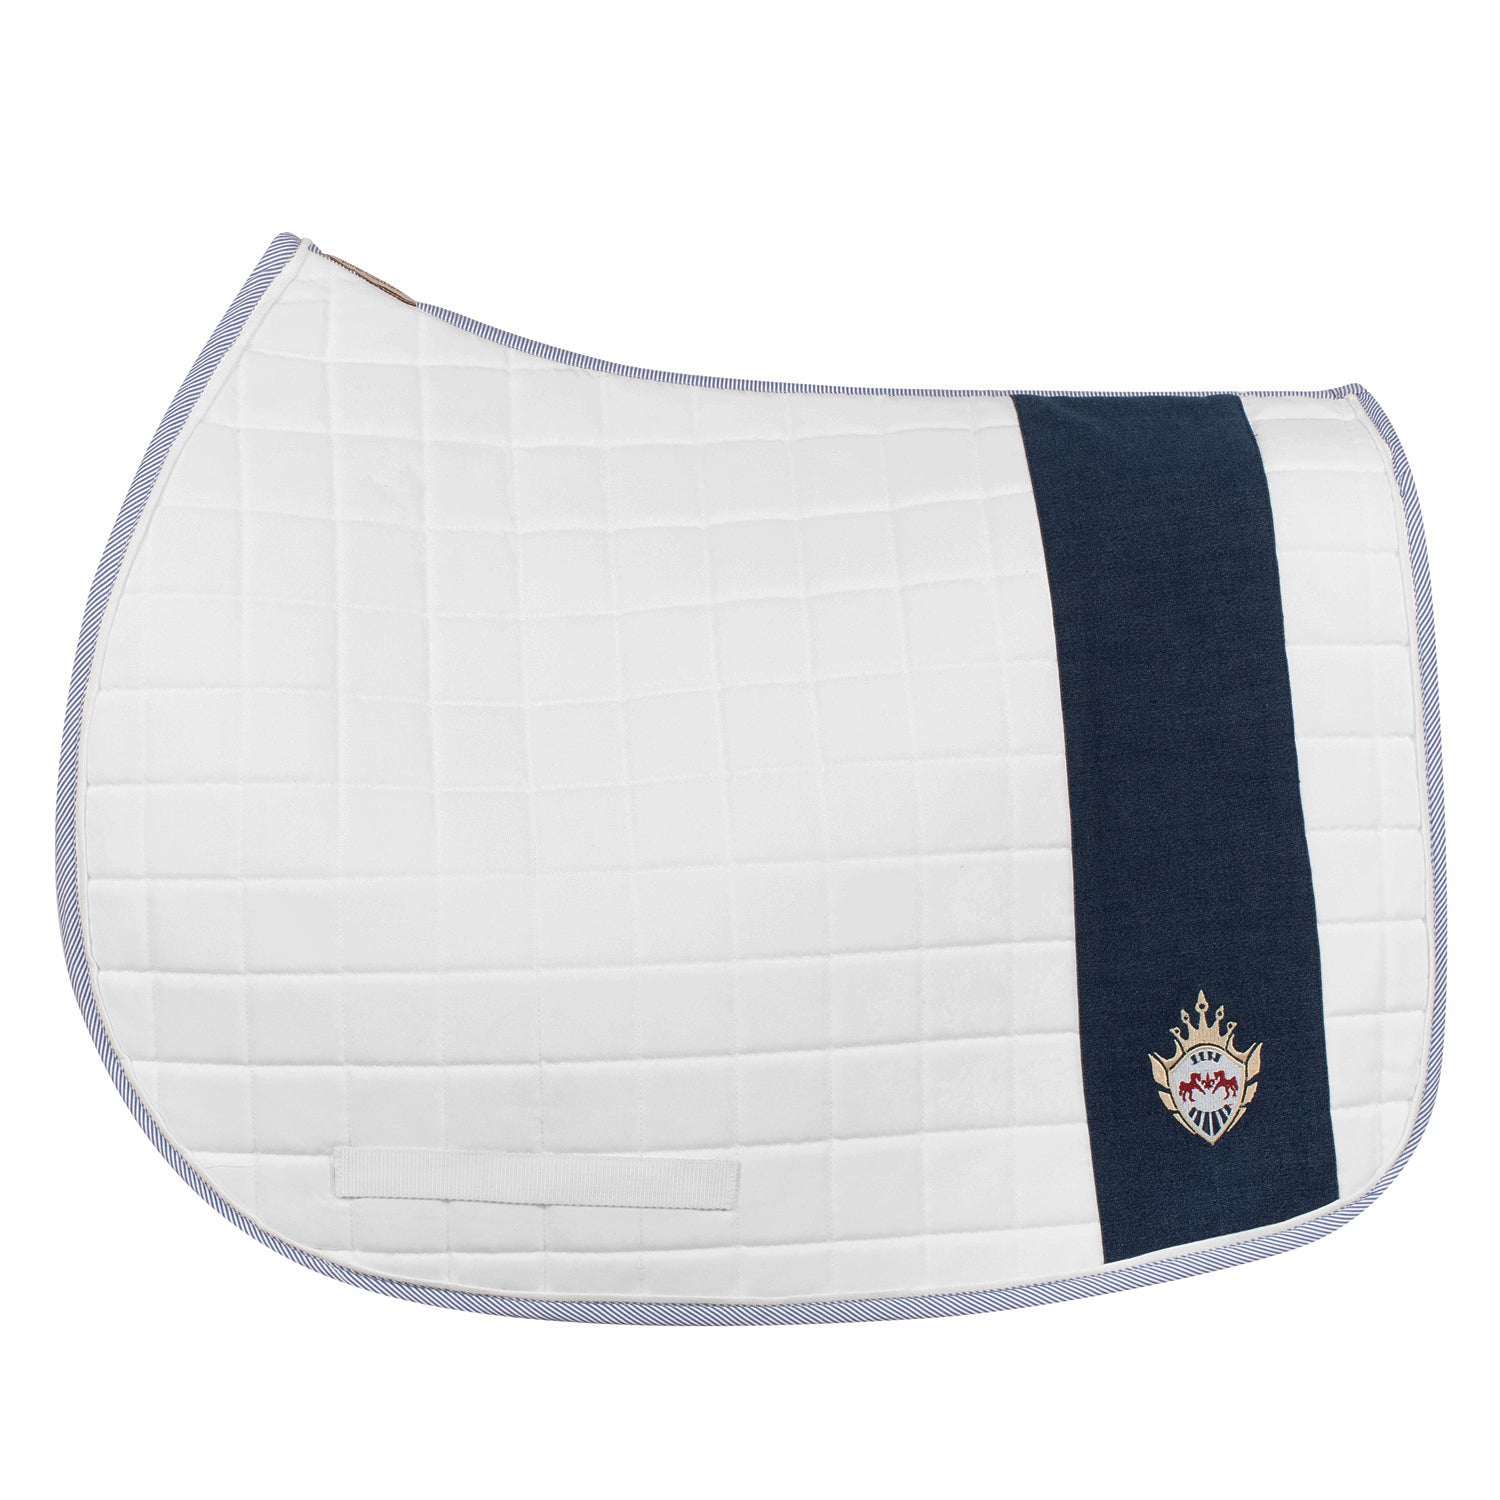 Equine Couture Jayden All Purpose Saddle Pad - Equine Couture - Breeches.com